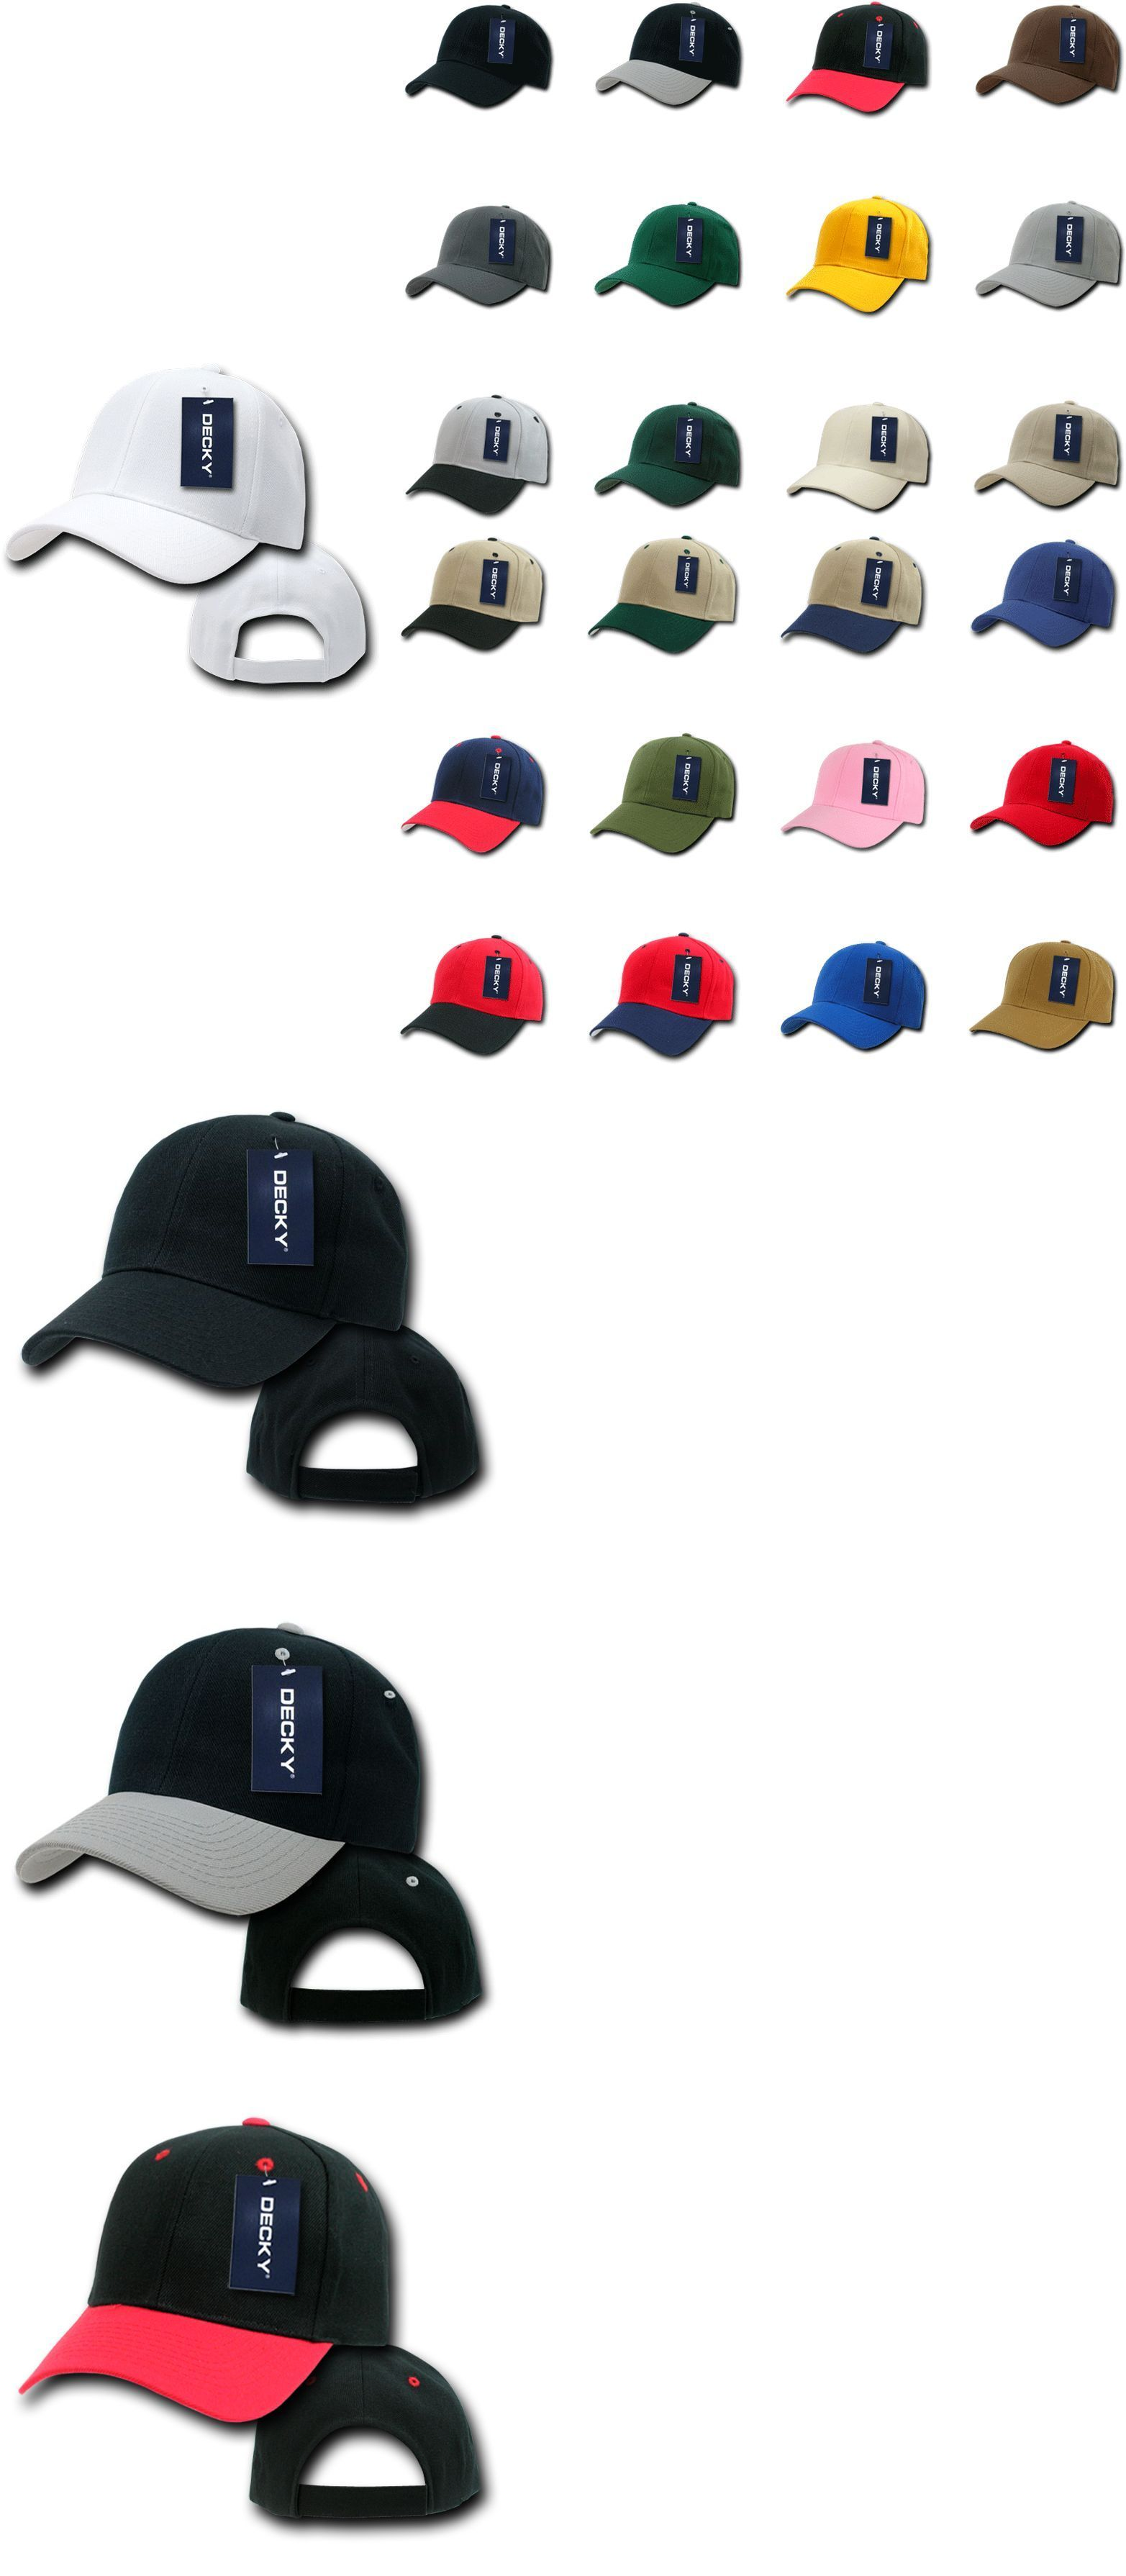 Mens Accessories 45053  20 Lot Decky Deluxe Polo Blank Baseball Hats Hat  Caps Cap Wholesale Lot -  BUY IT NOW ONLY   82.99 on  eBay  accessories   decky ... 9dd2bf0f25e